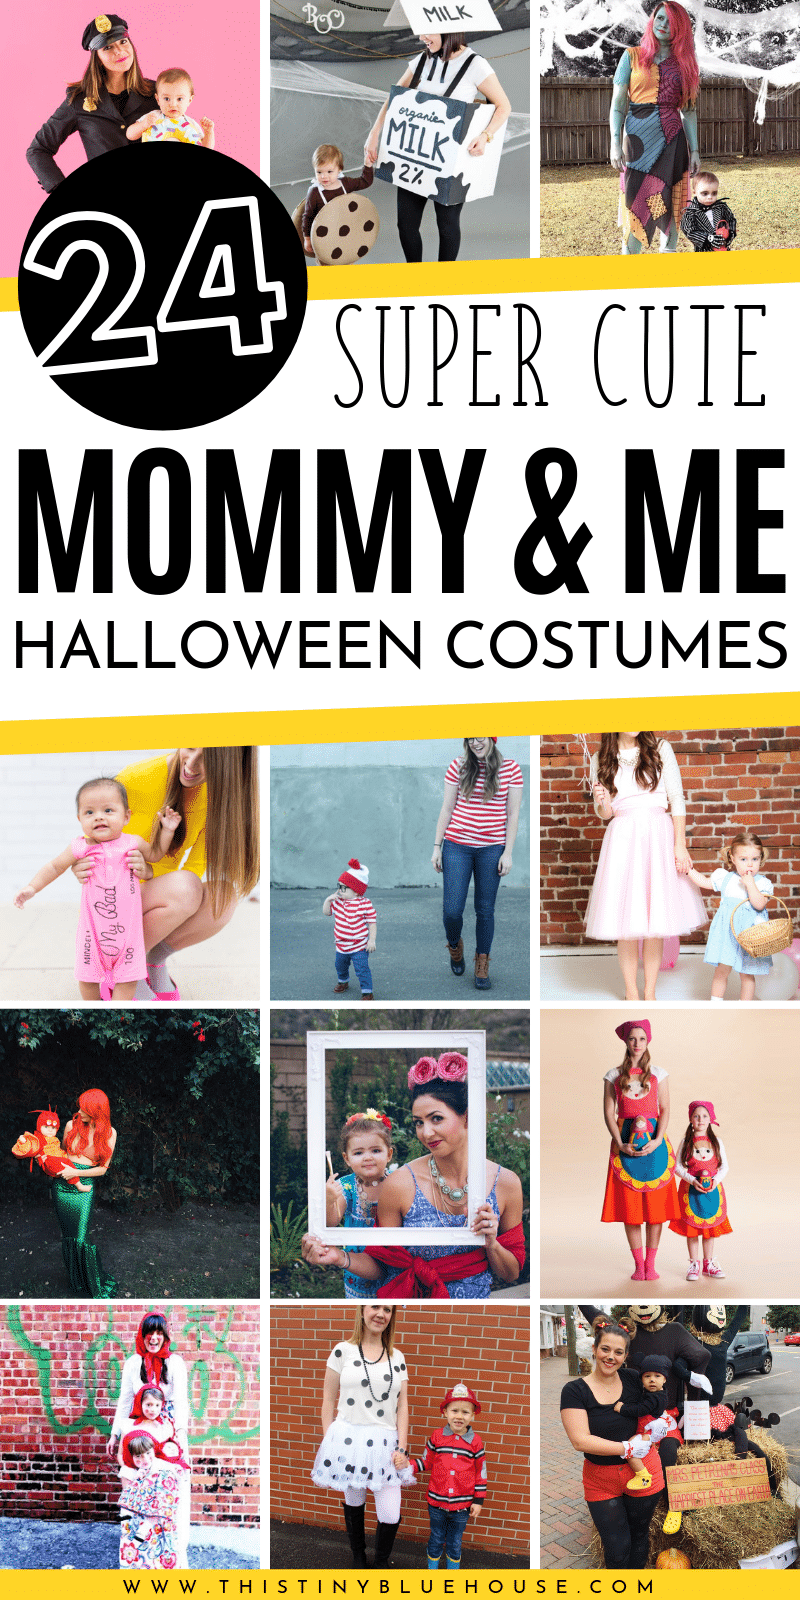 Make Halloween extra special this year with these fabulous mommy and me halloween costumes! Fun creative and absolutely adorable! #halloweencostumes #mommyandmecostumes #mommyandmehalloweencostumes #mommyandmecostumeideas #mommyandmecostumeinspiration